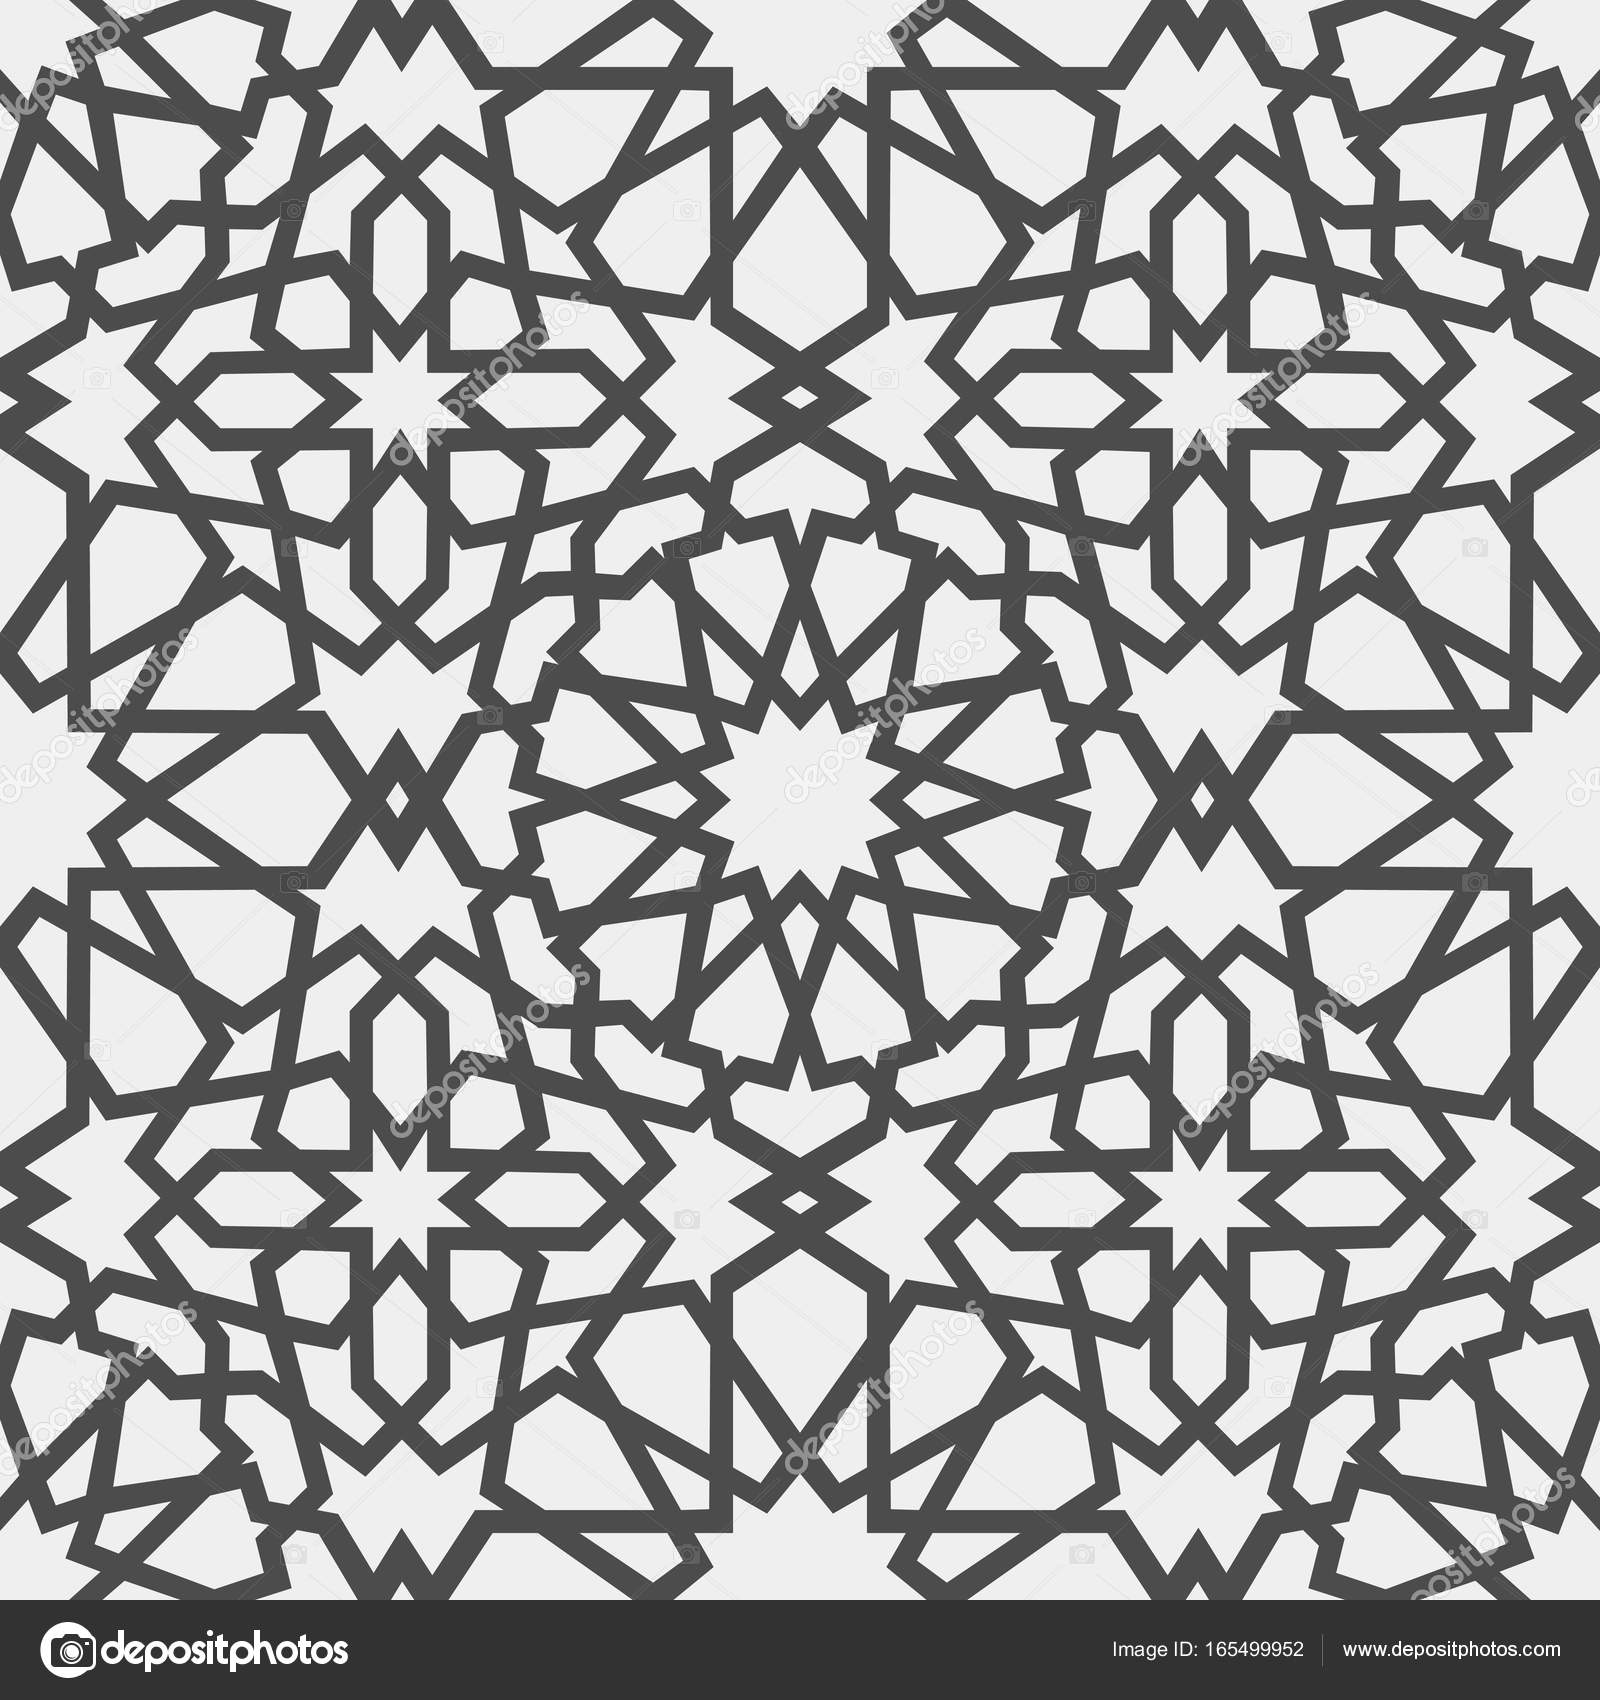 islamic pattern seamless arabic geometric pattern east ornament indian ornament persian motif 3d endless texture can be used for wallpaper pattern fills web page background stock vector c damiengeso 165499952 https depositphotos com 165499952 stock illustration islamic pattern seamless arabic geometric html